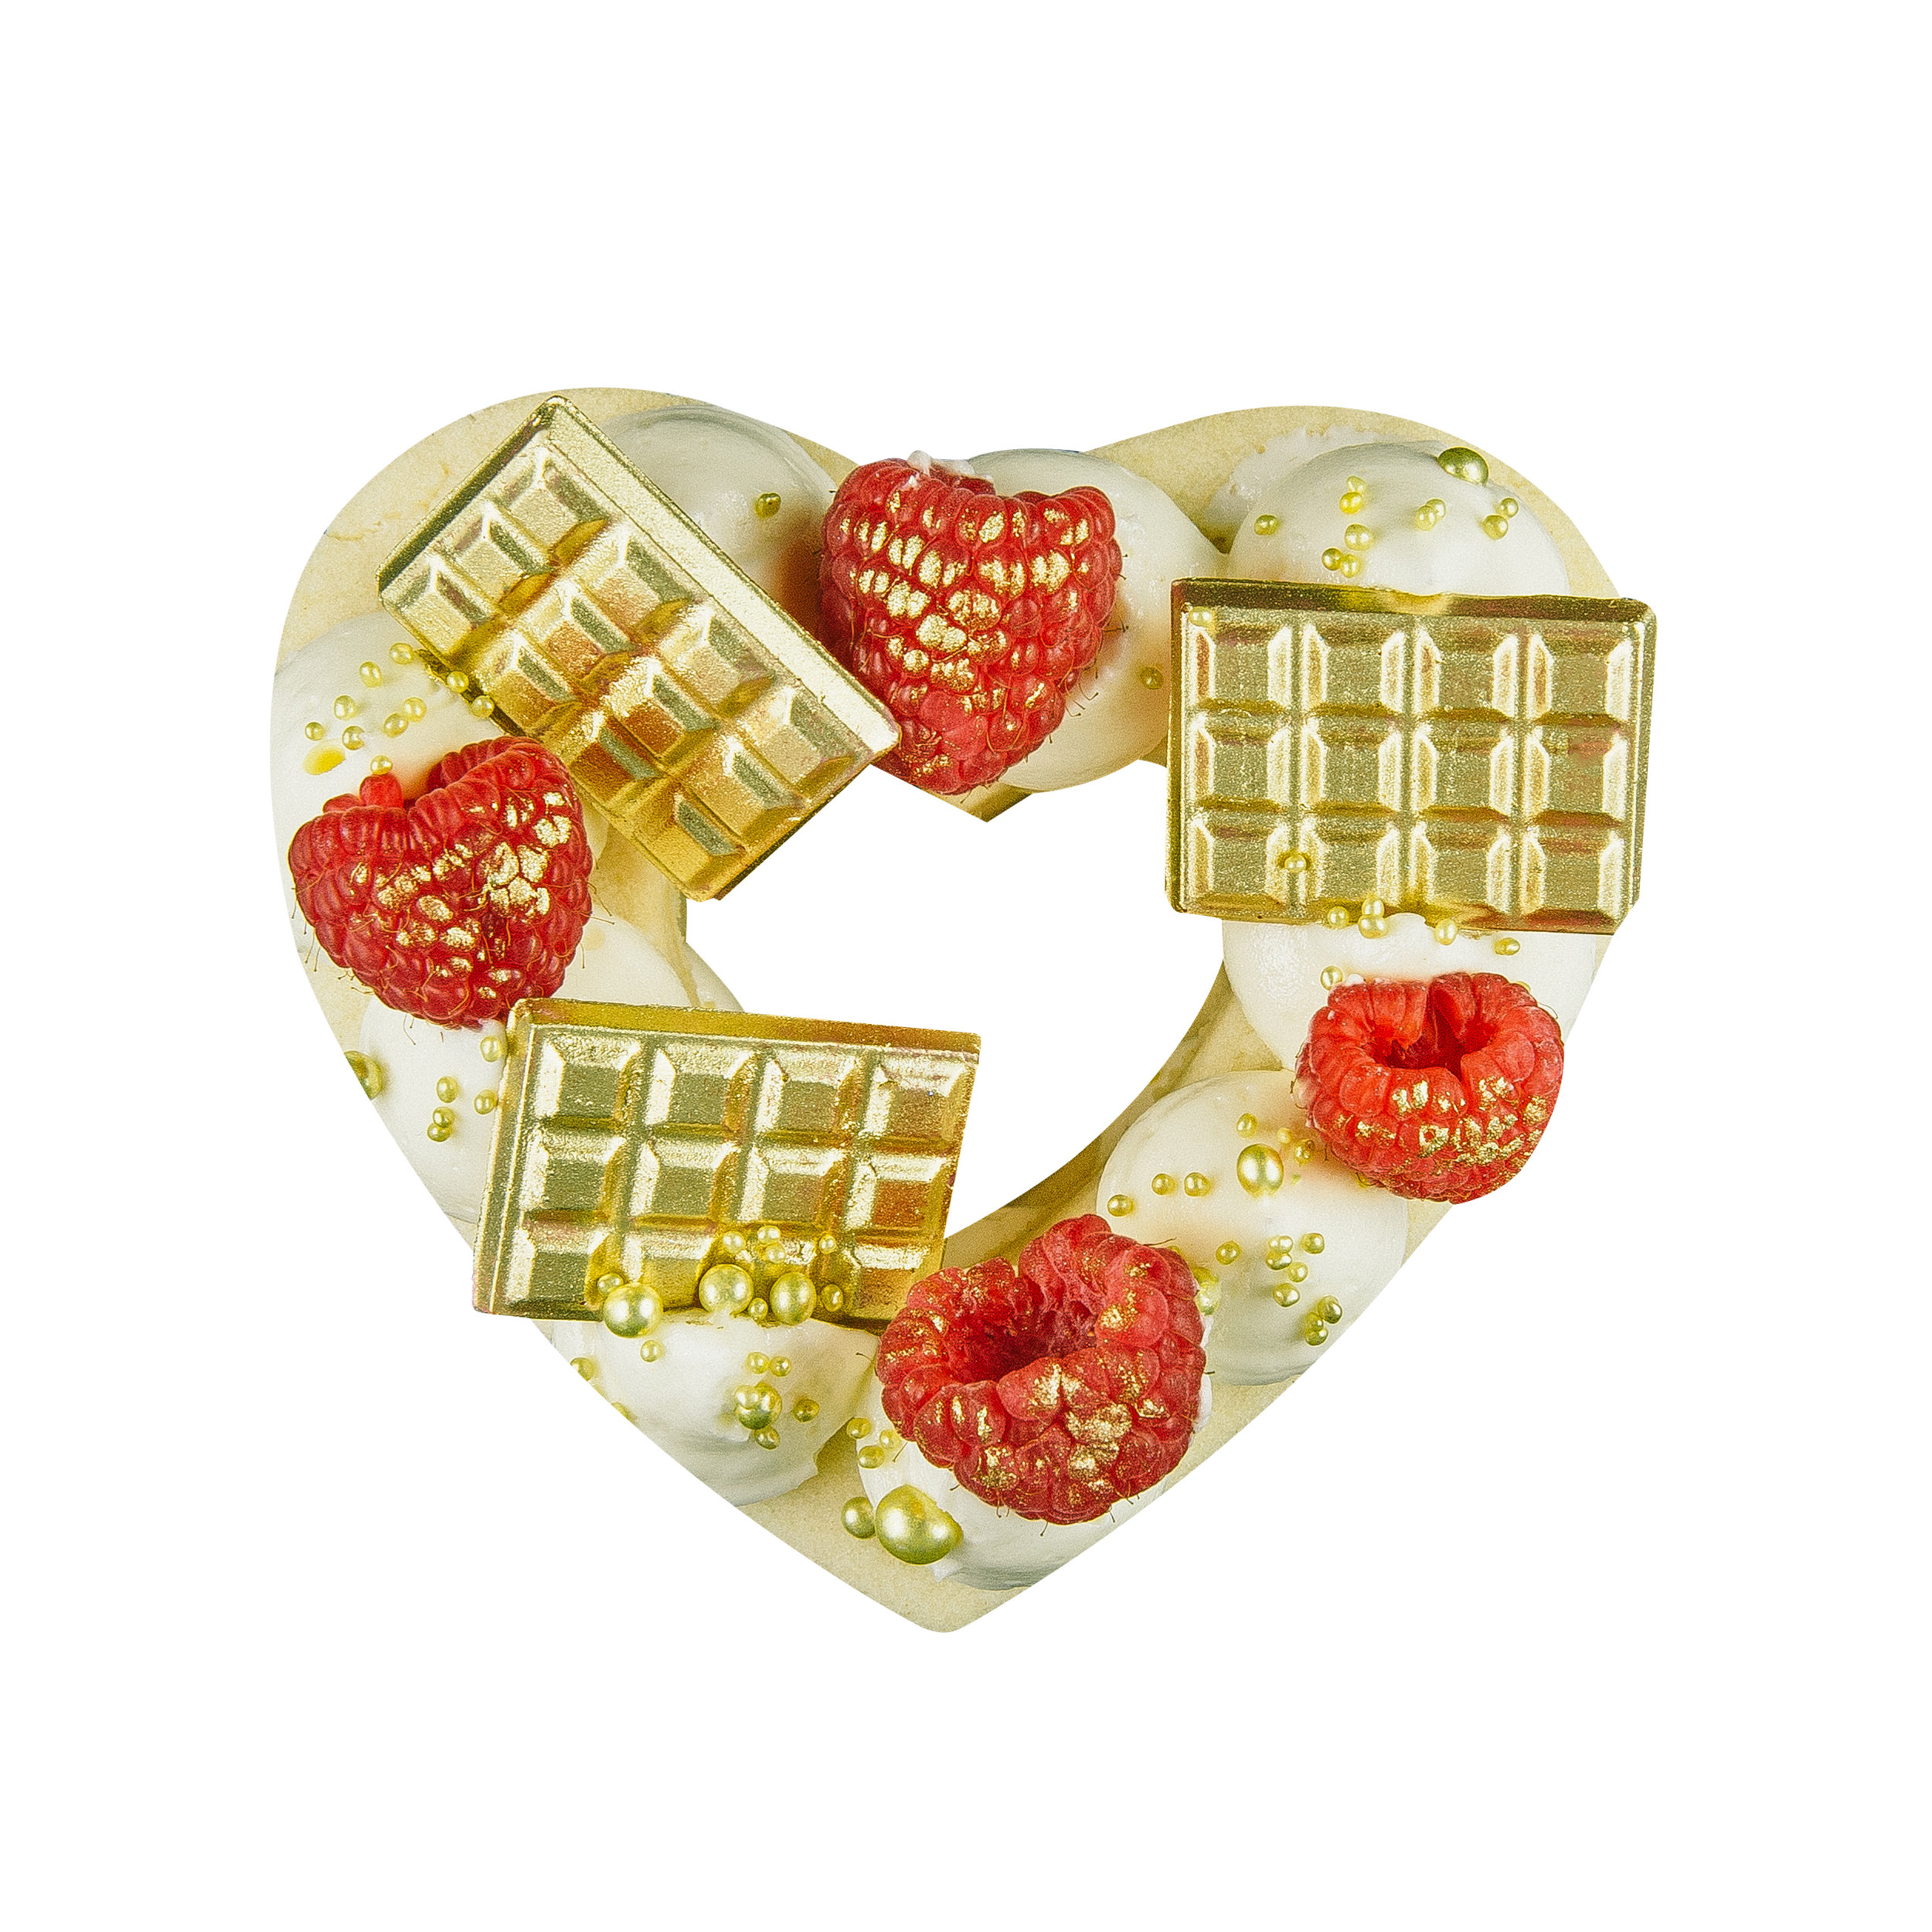 RED MINI HEART COOKIE CAKE - SERVES 1-2 PEOPLEALMOND COOKIE + CREAM CHEESE WHIP+ MINI GOLD CHOCOLATE BARS + RASPBERRIES + SPRINKLES